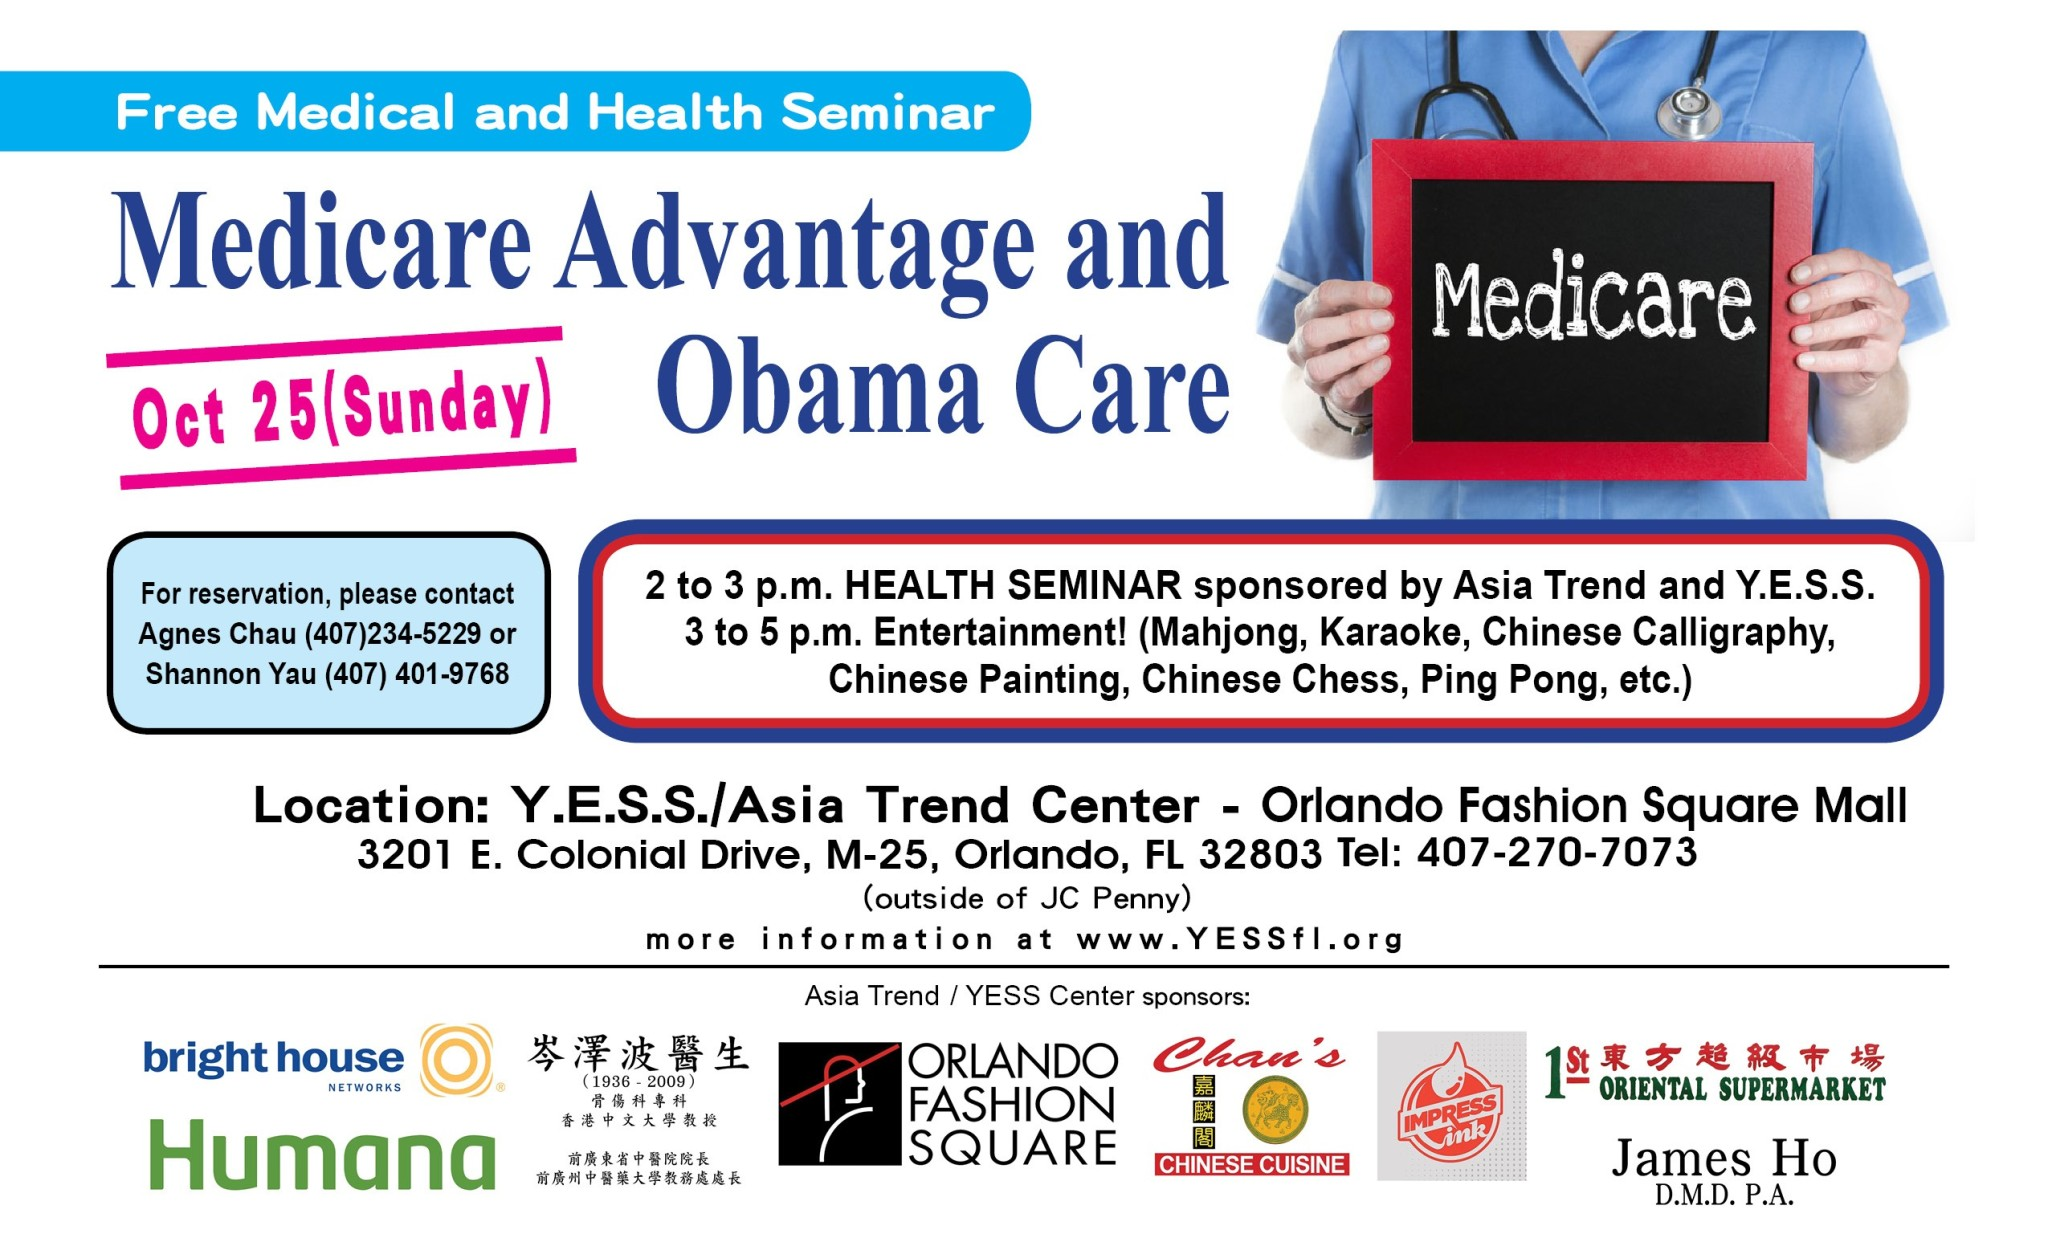 Free Medical and Health Seminar - Medicare Advantage and Obama Care